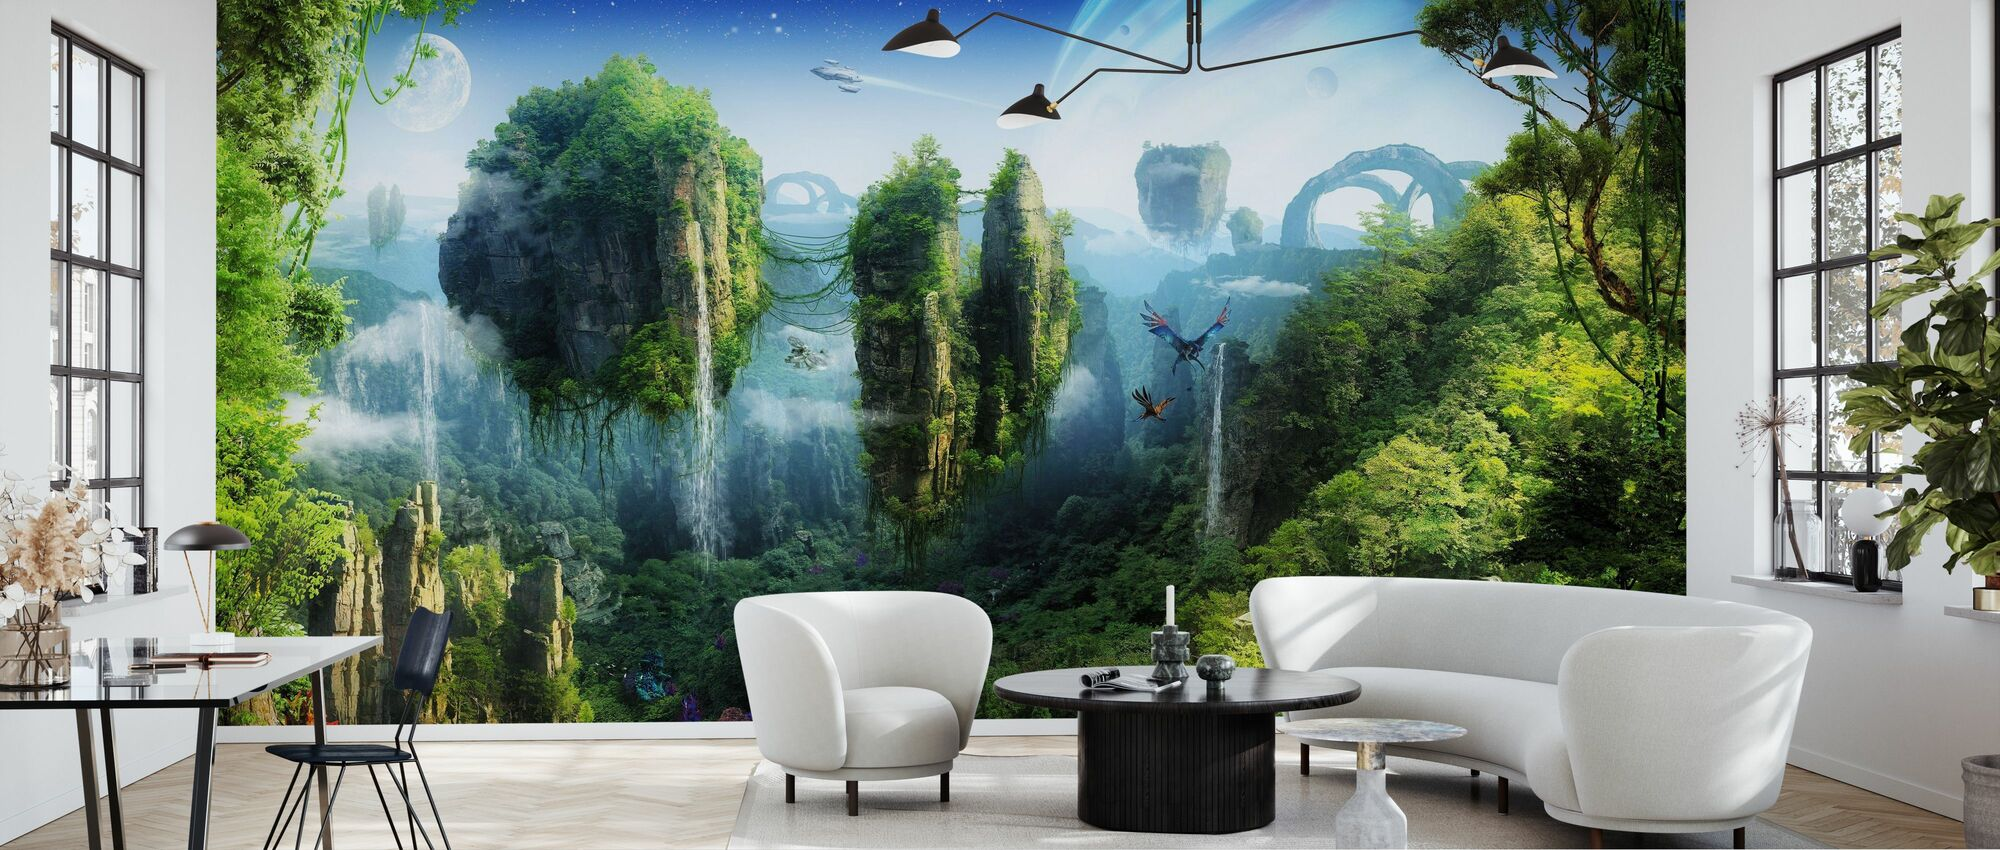 Magic Tropical Forest - Wallpaper - Living Room